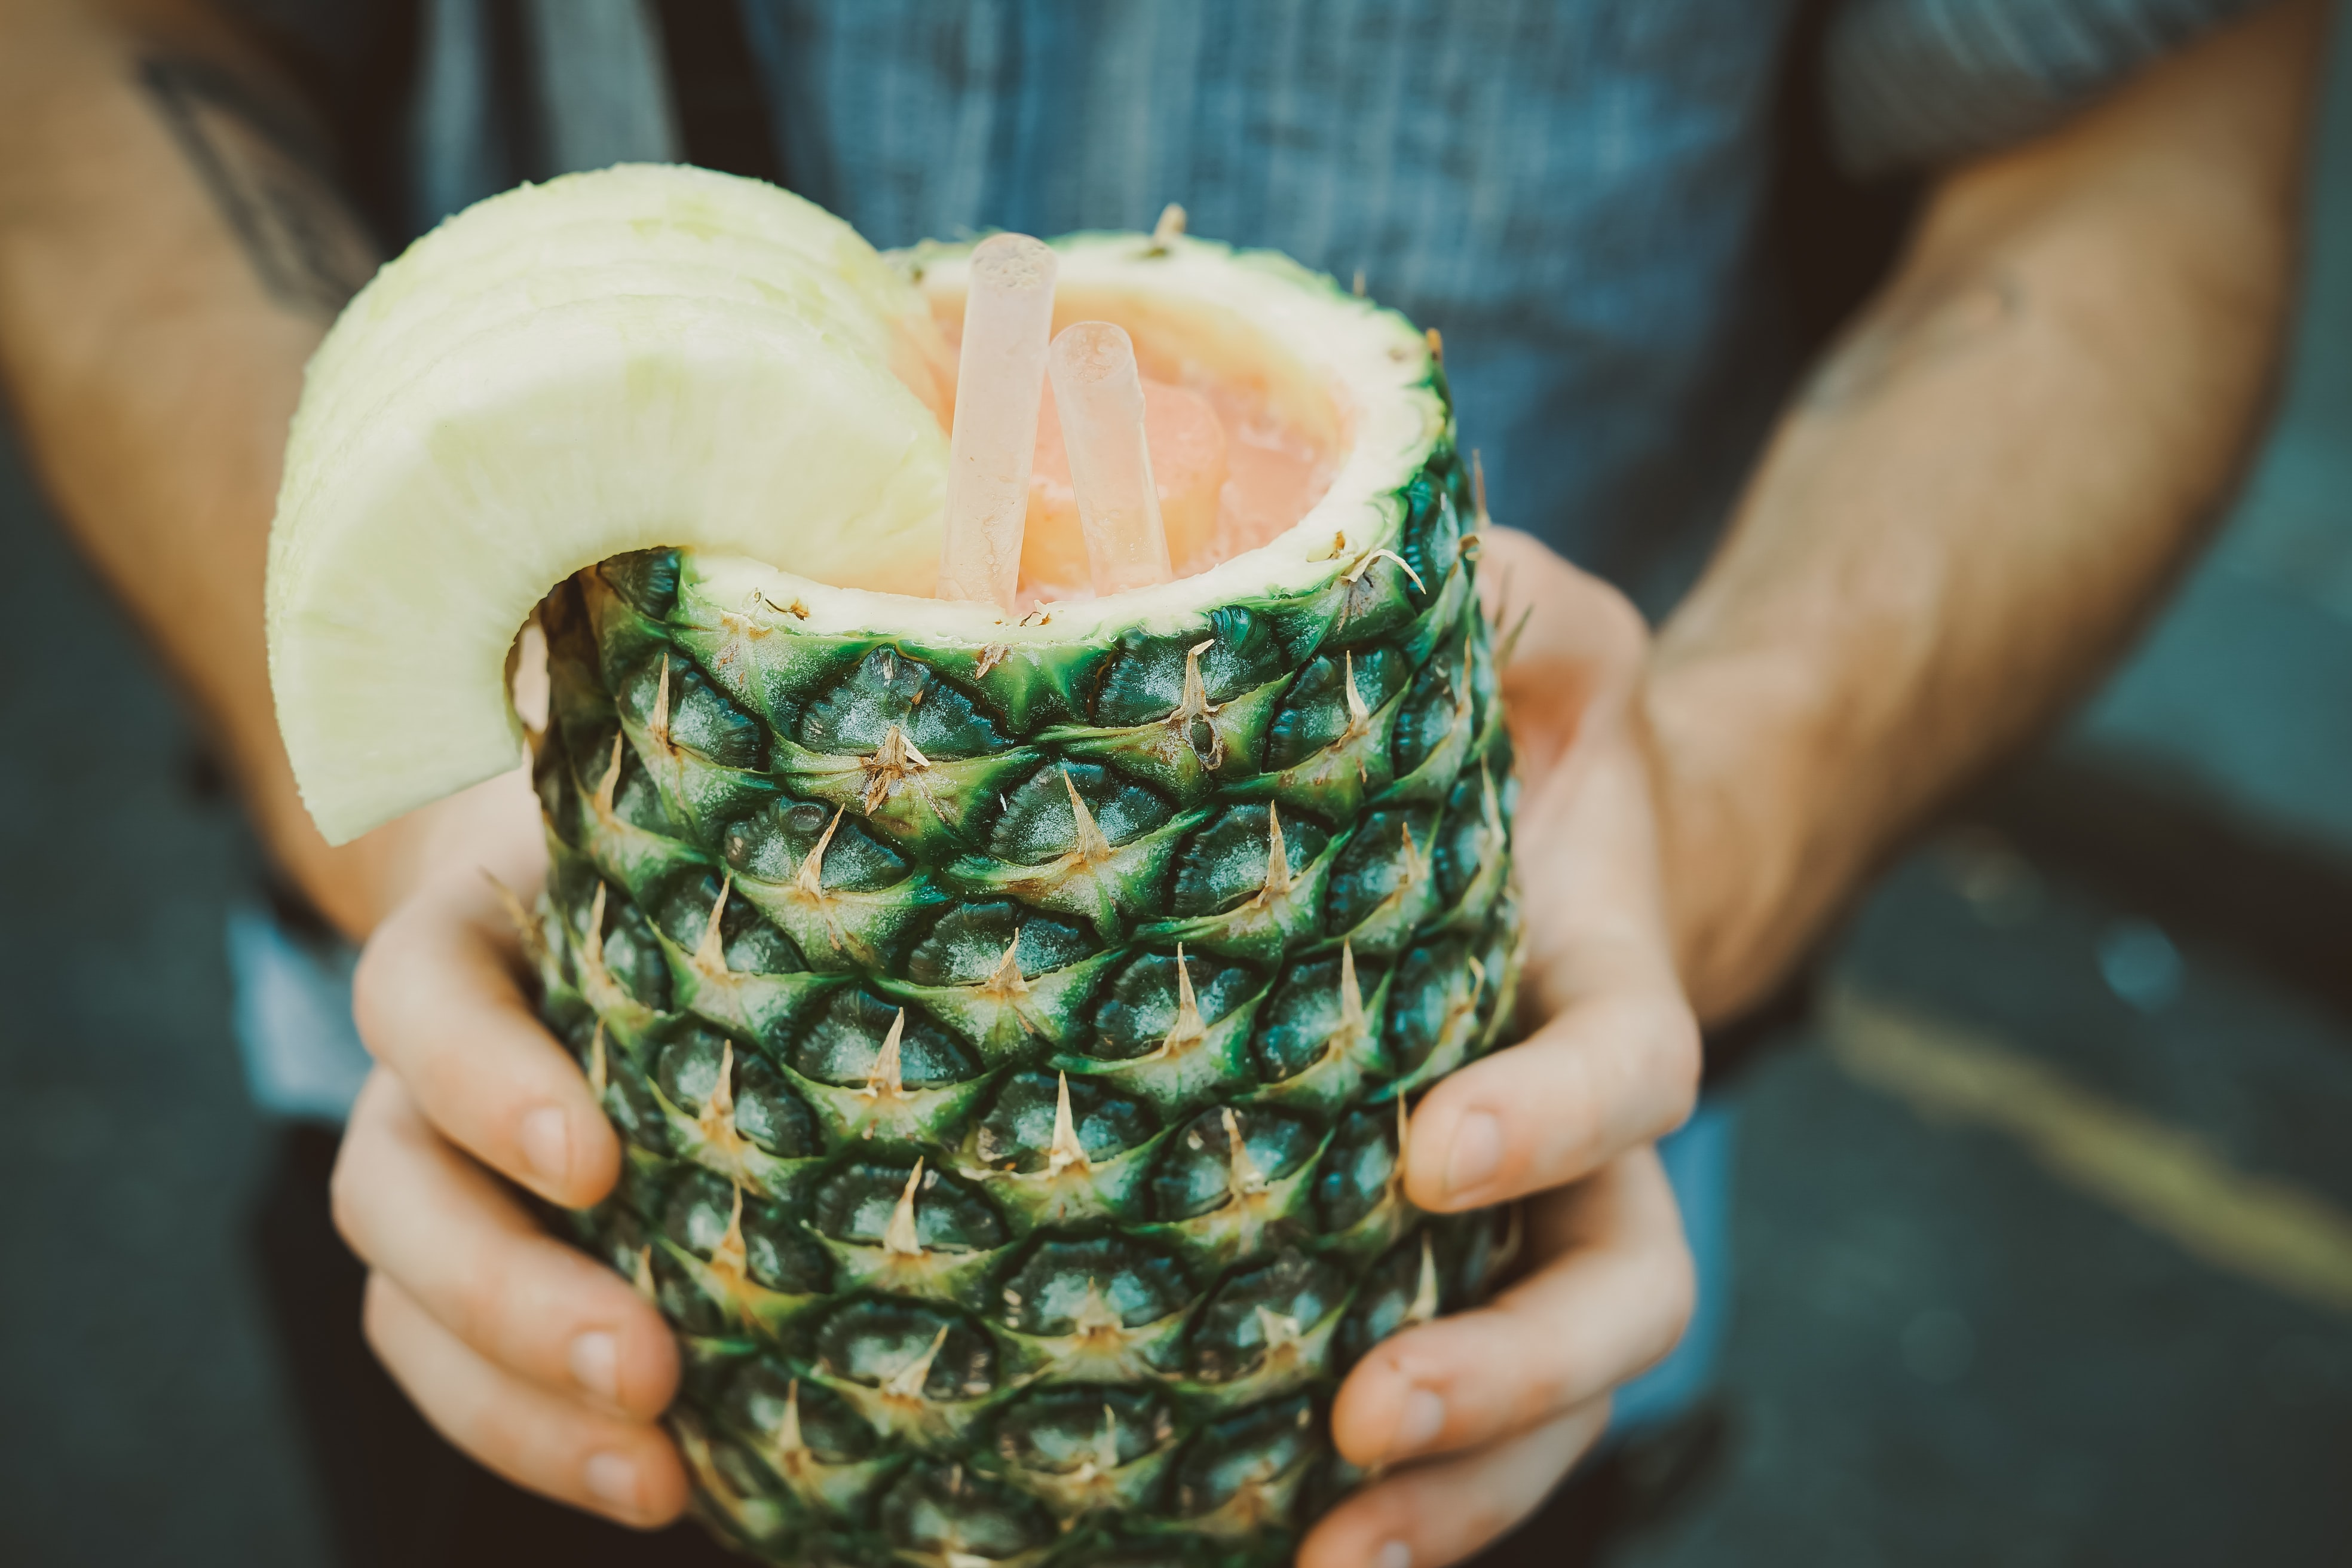 person holding carving pineapple